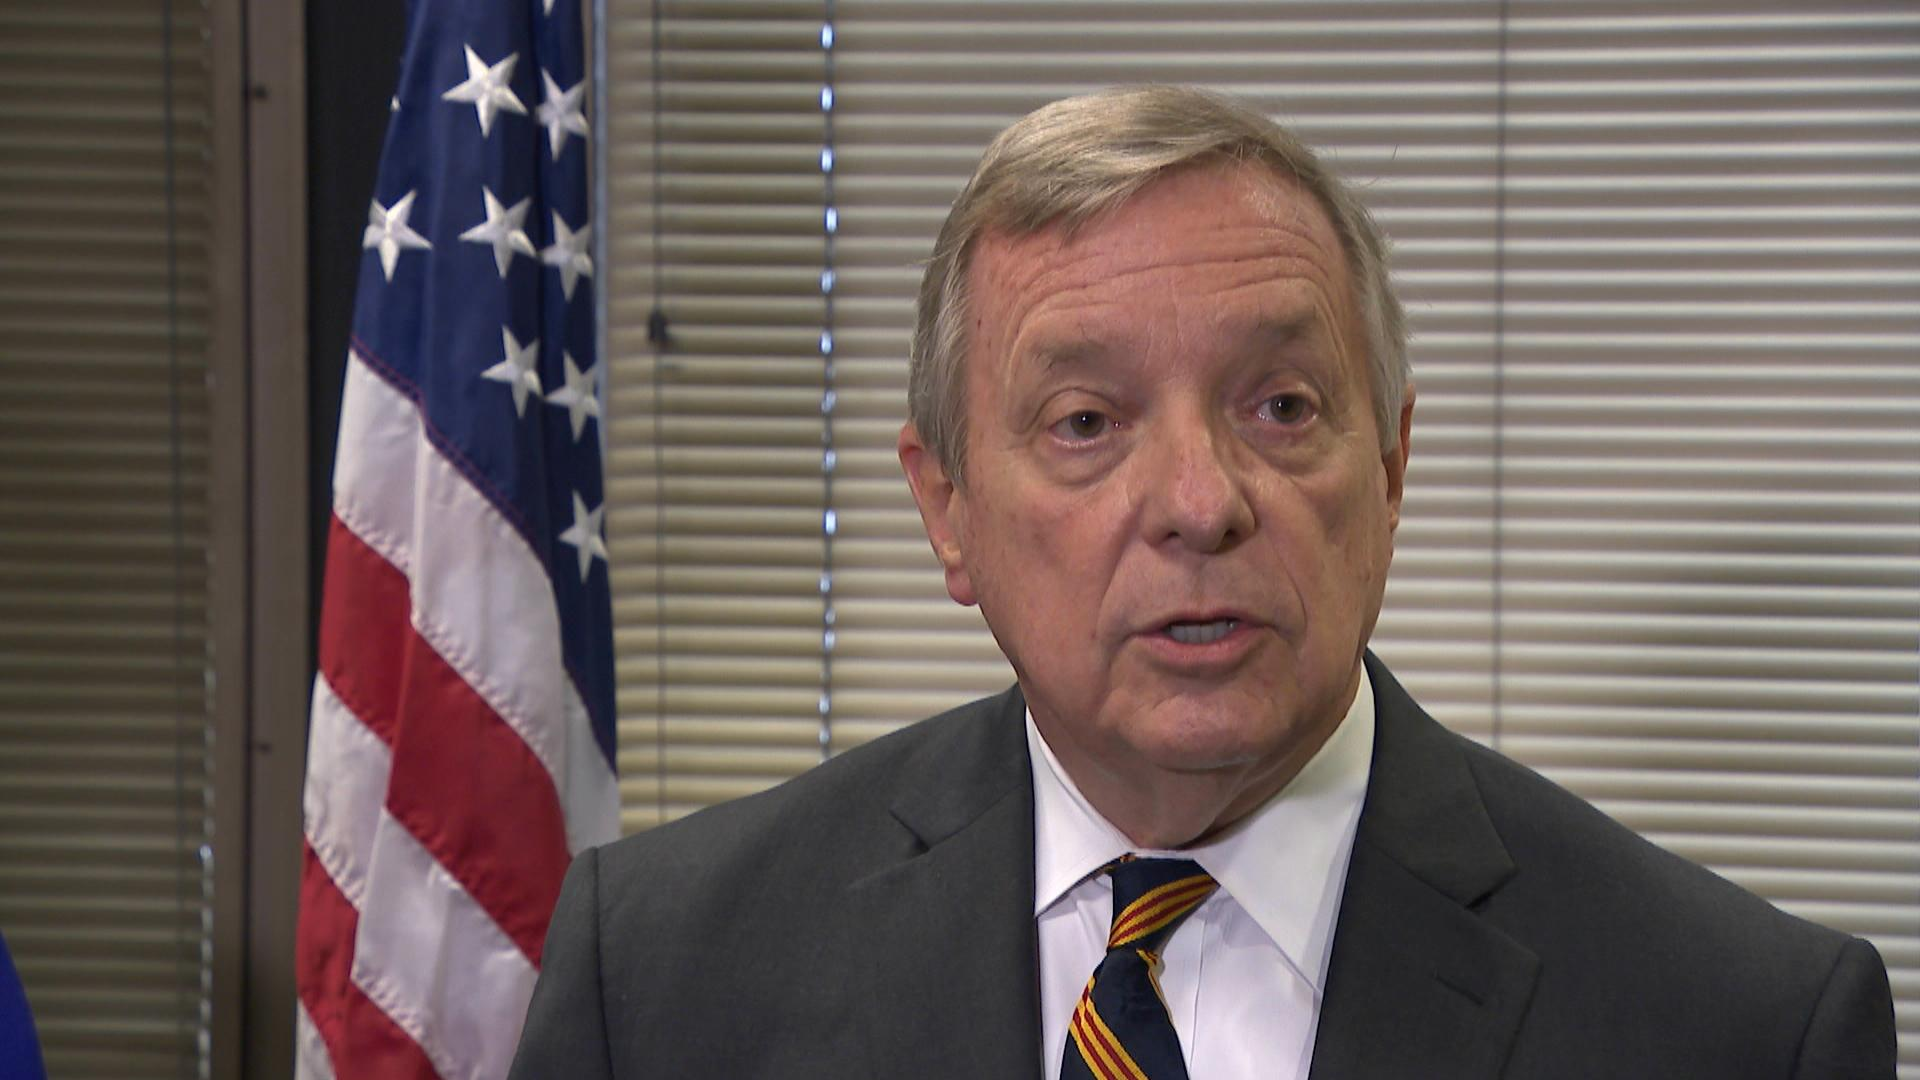 U.S. Sen. Dick Durbin speaks to the media on Monday, June 11. (Chicago Tonight)